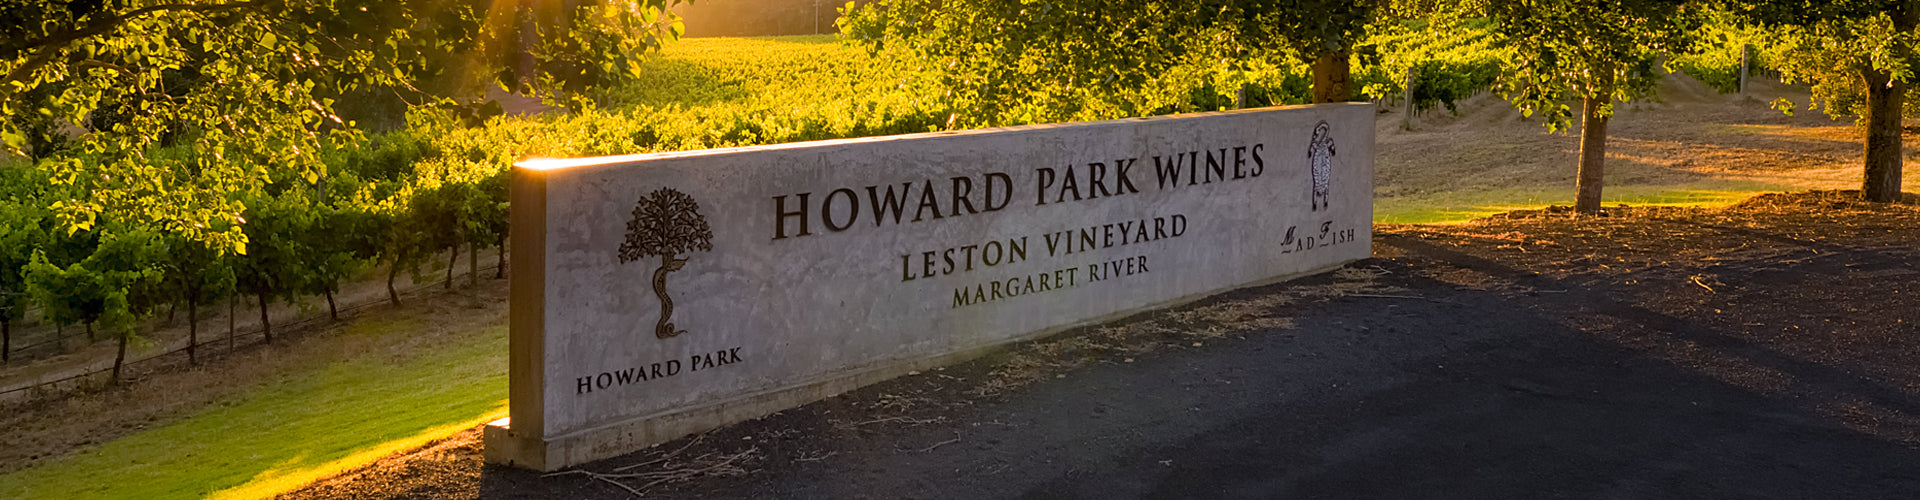 Howard Park Wines Winery Sign